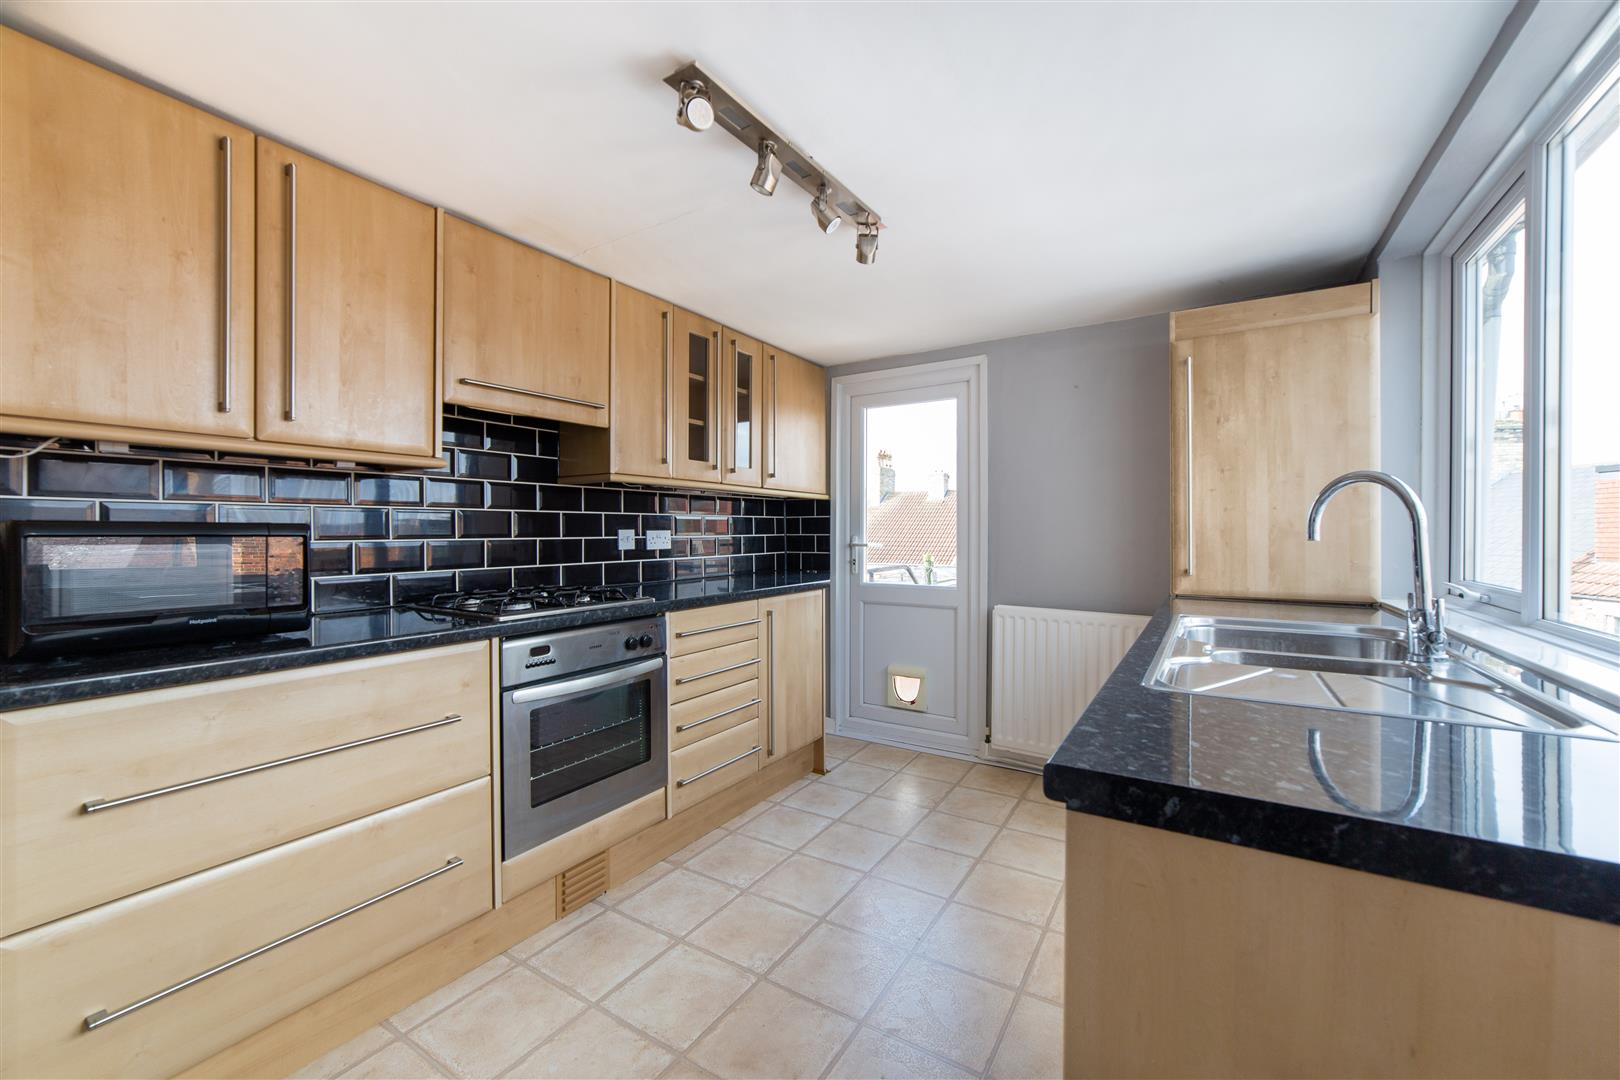 2 bed apartment to rent in North Shields, NE30 2HG - Property Image 1